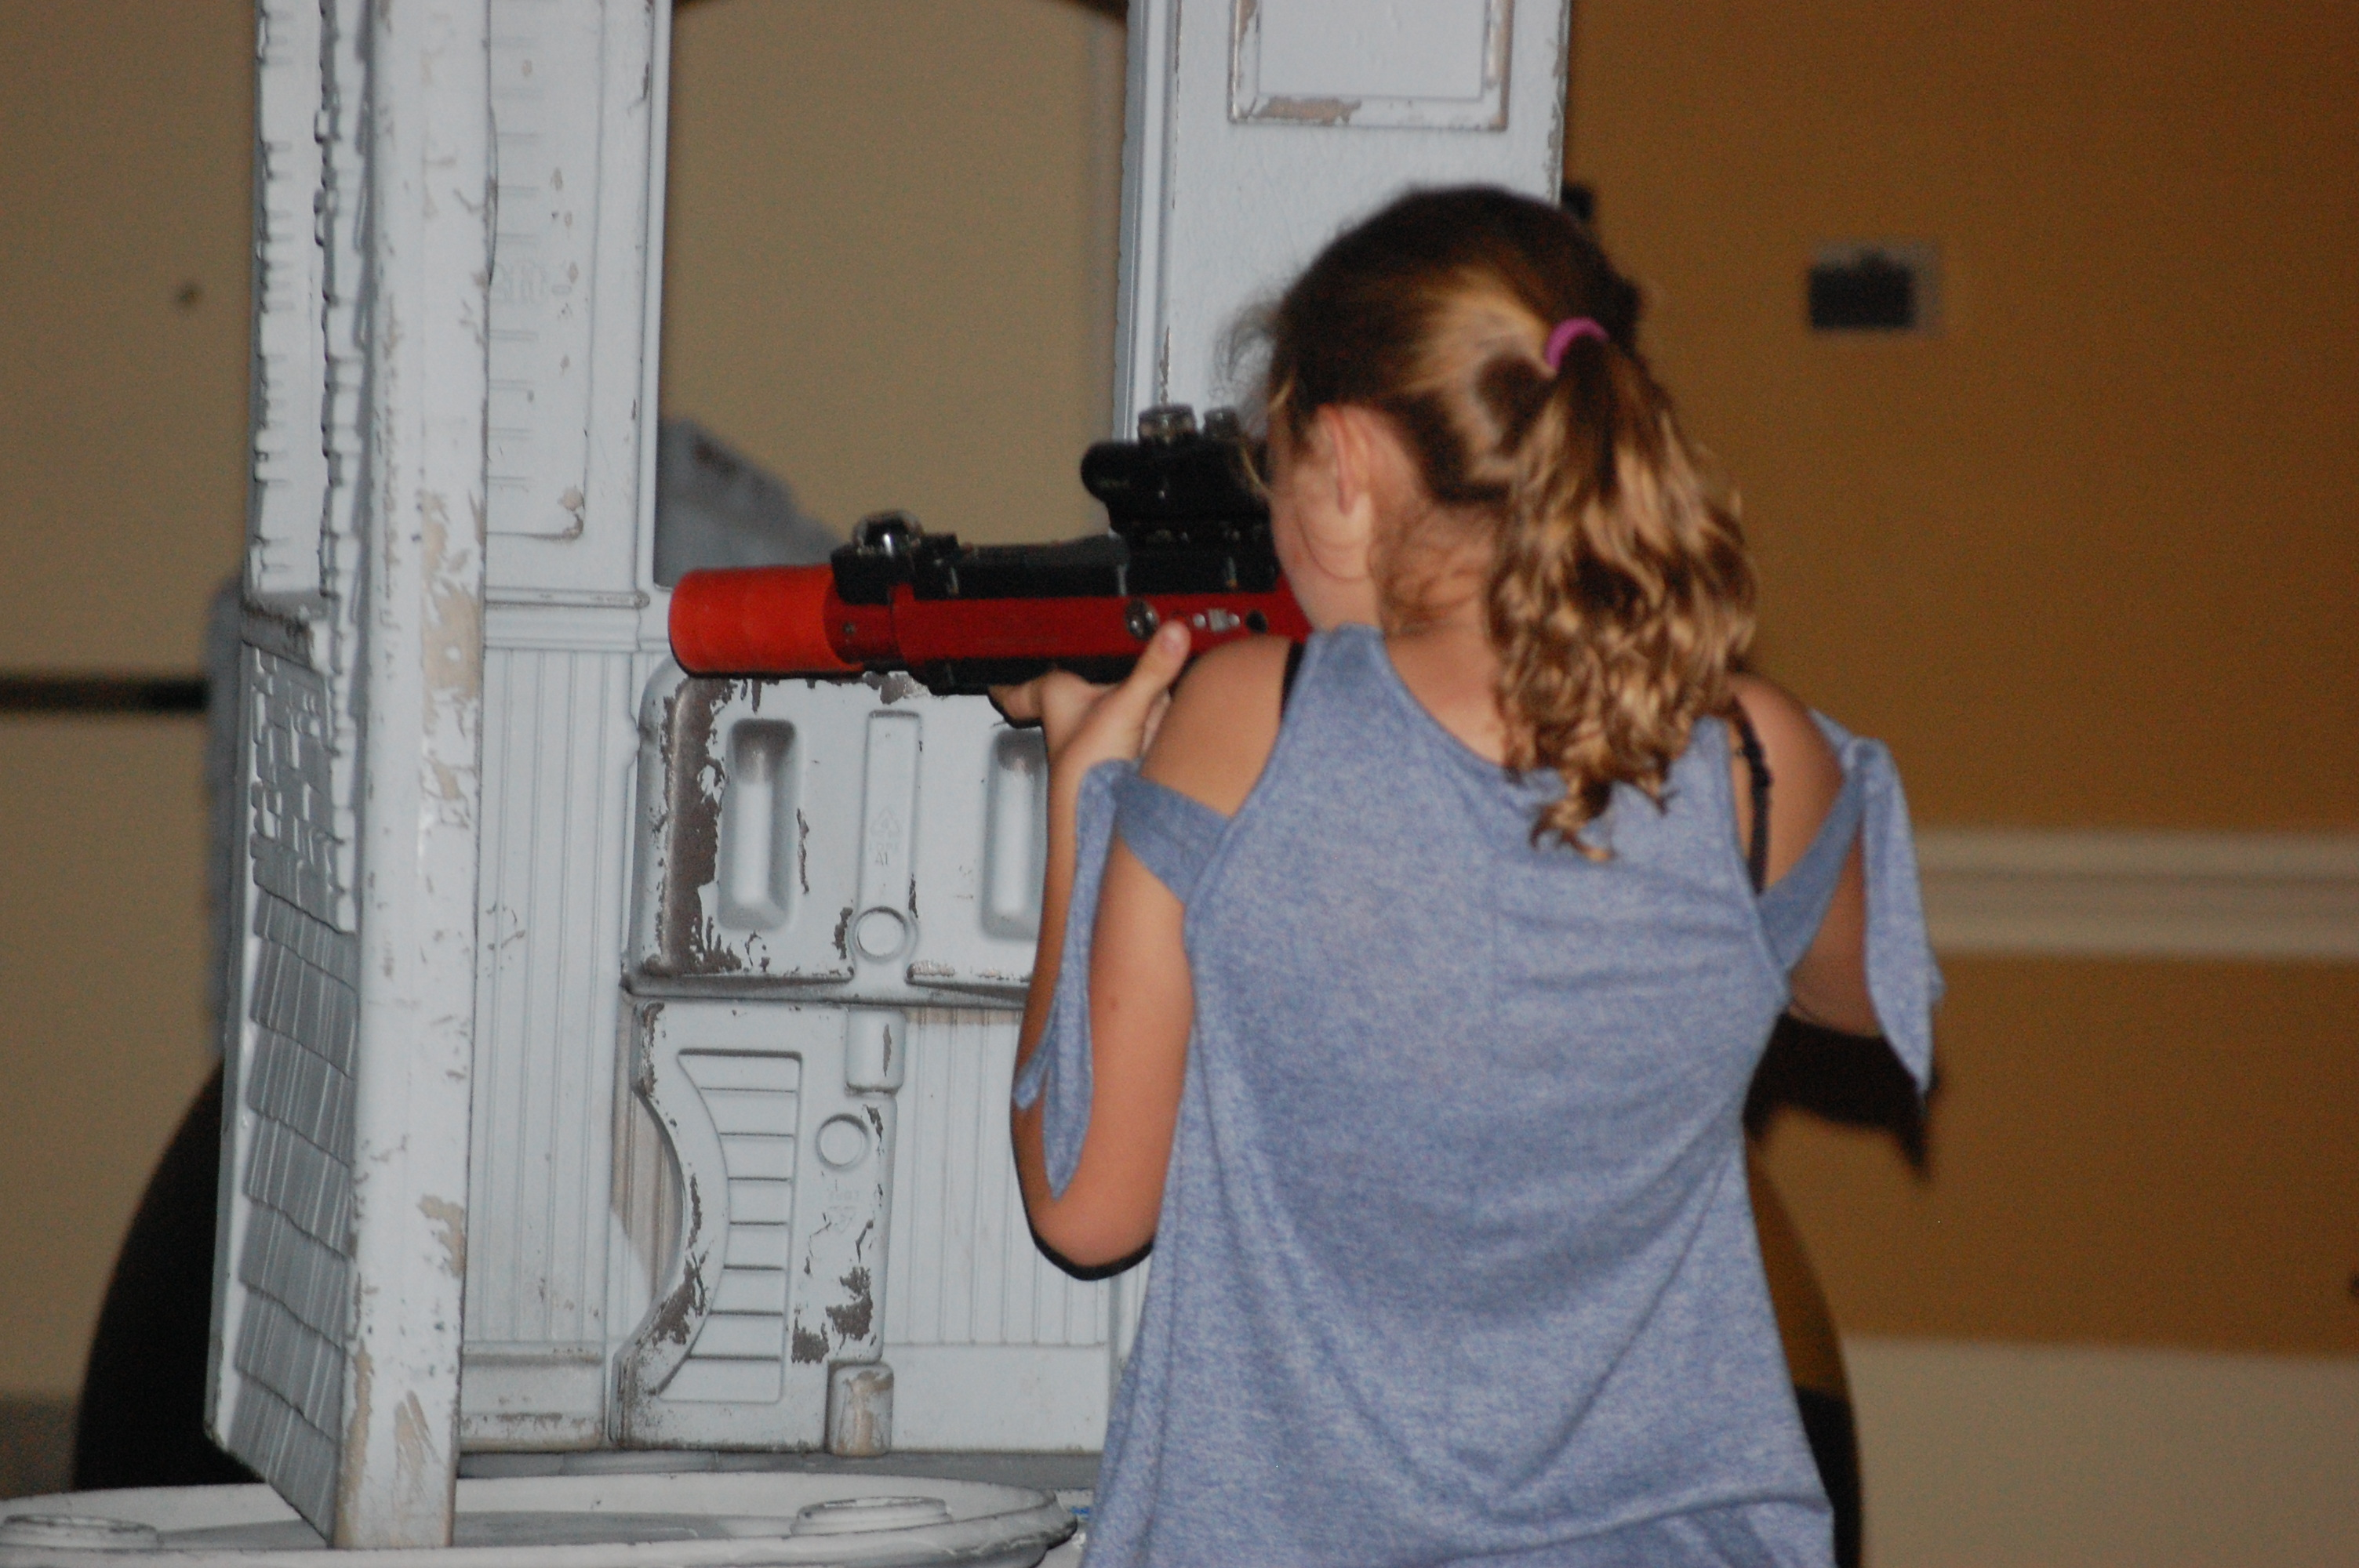 Mobile Laser Tag in Arcadia, FL